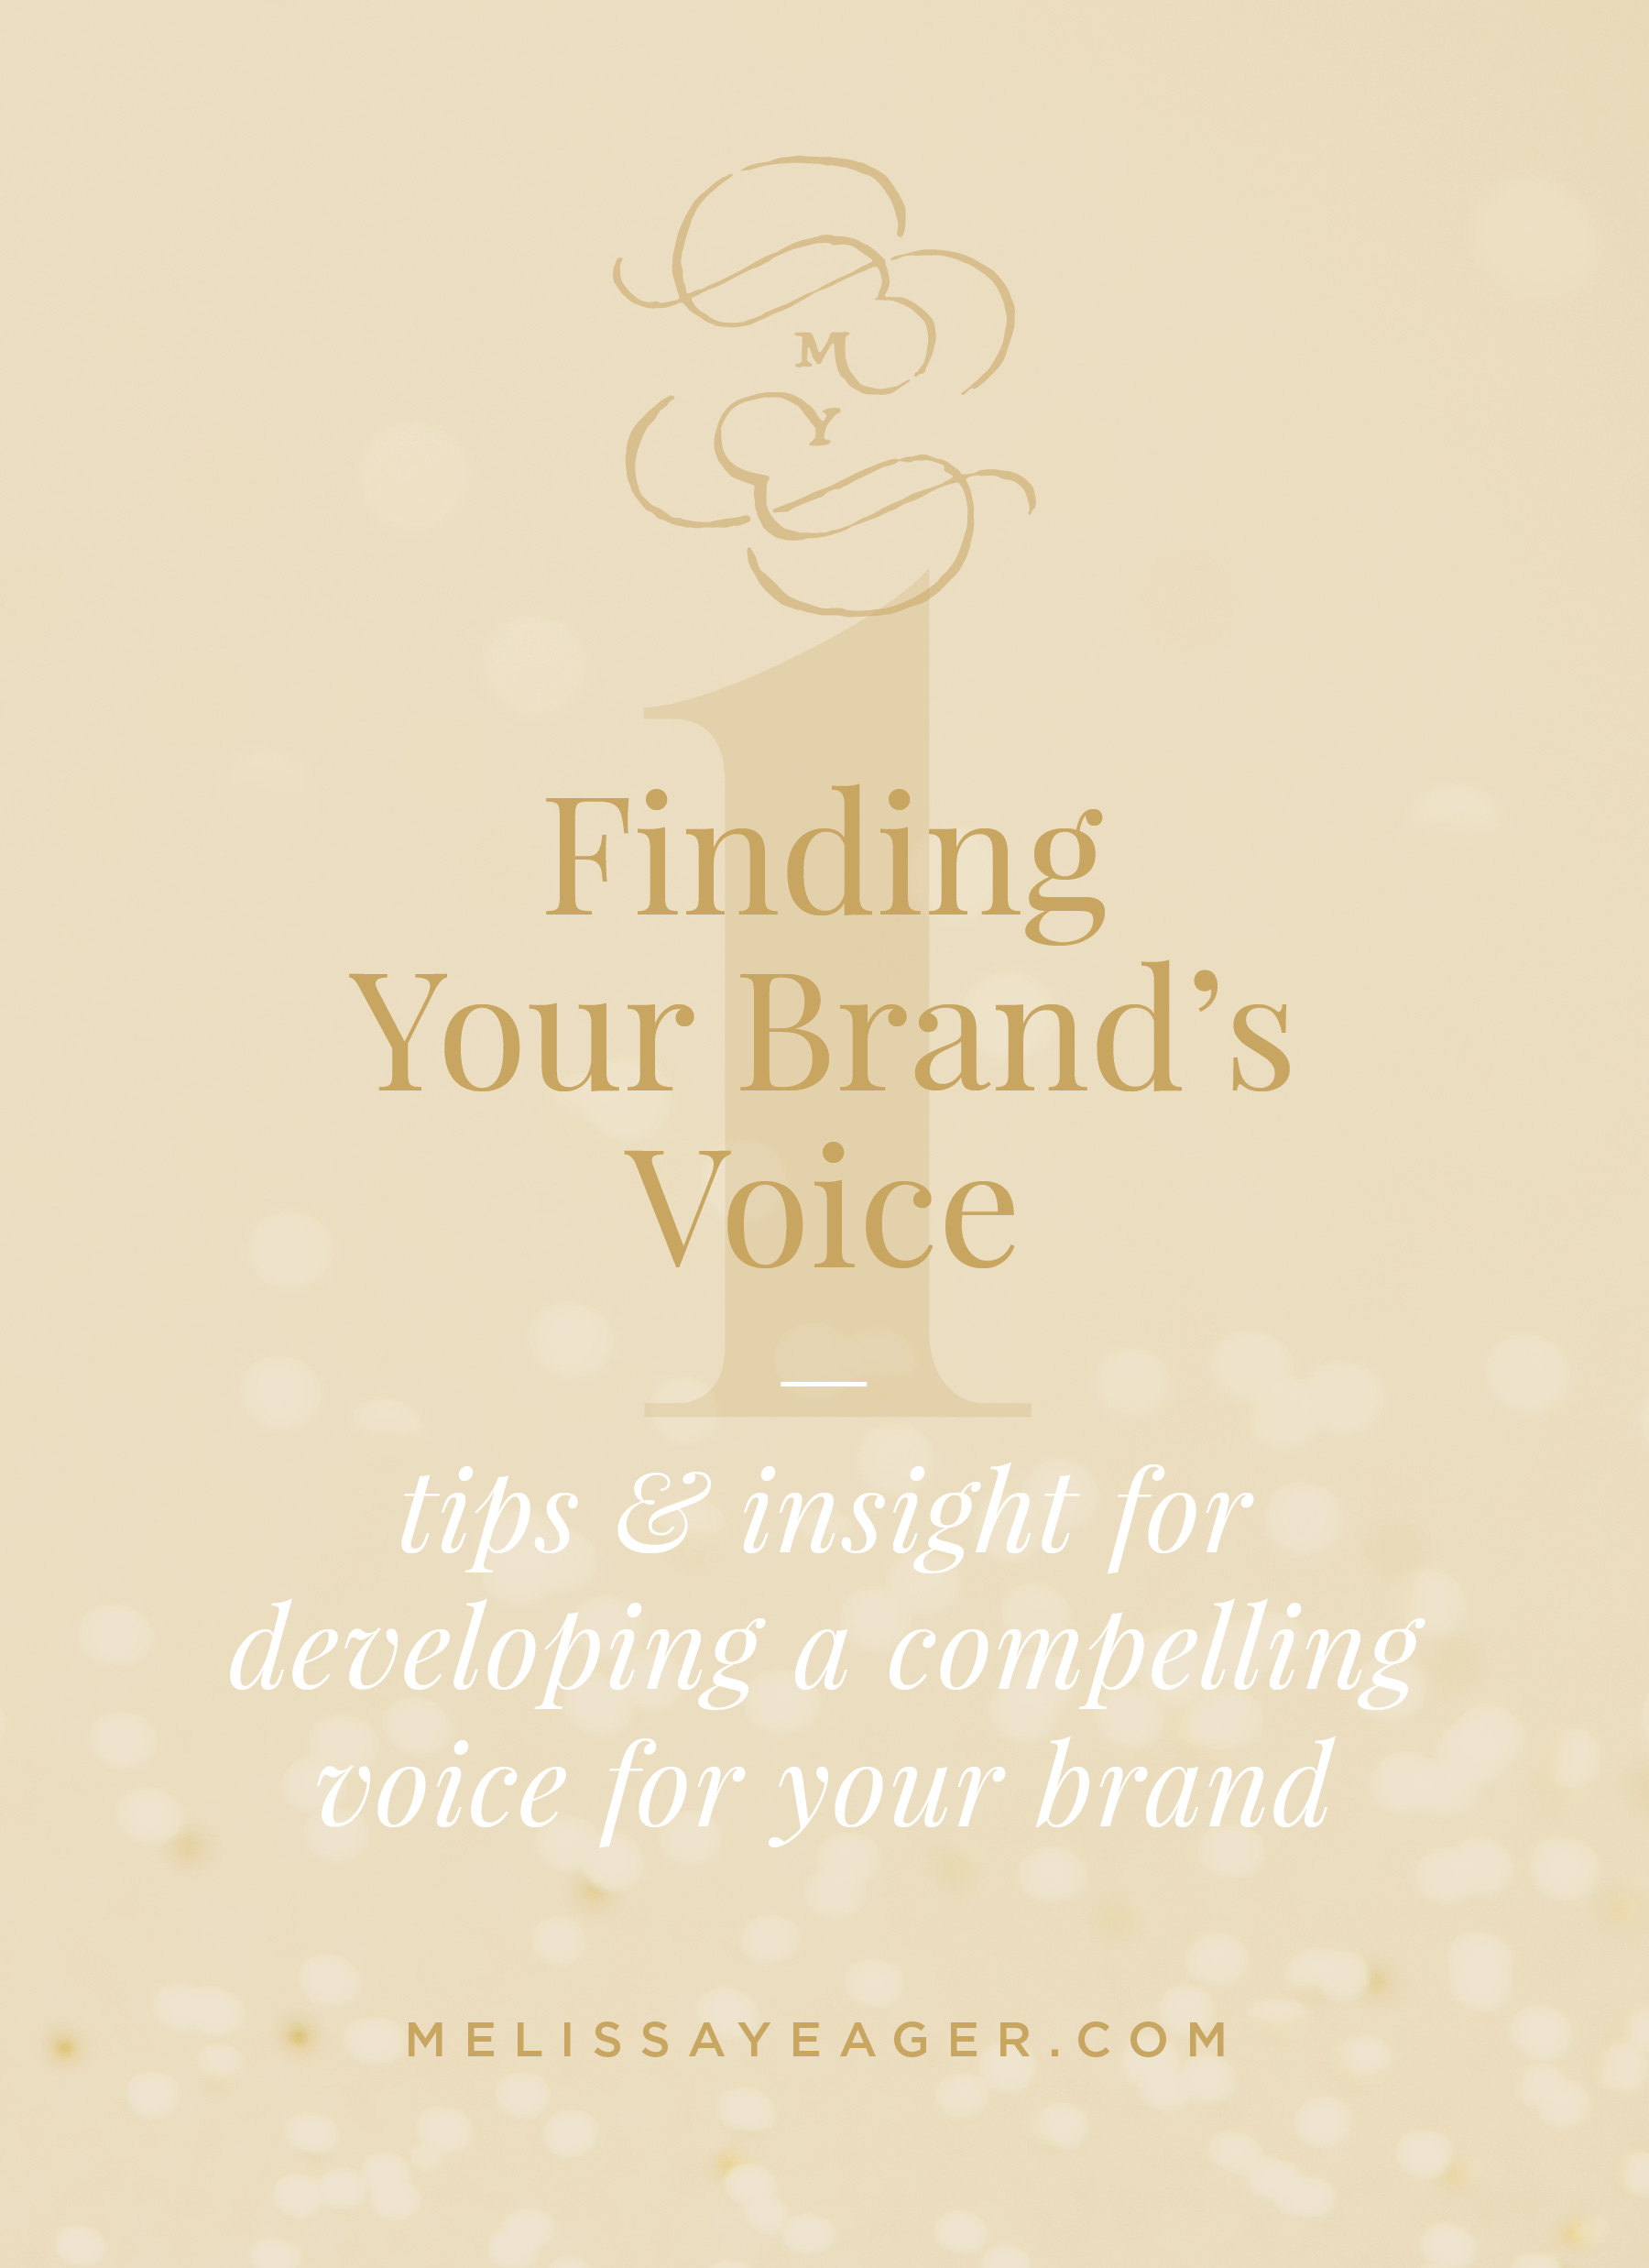 Finding Your Brand's Voice - tips & insight for developing a compelling voice for your brand